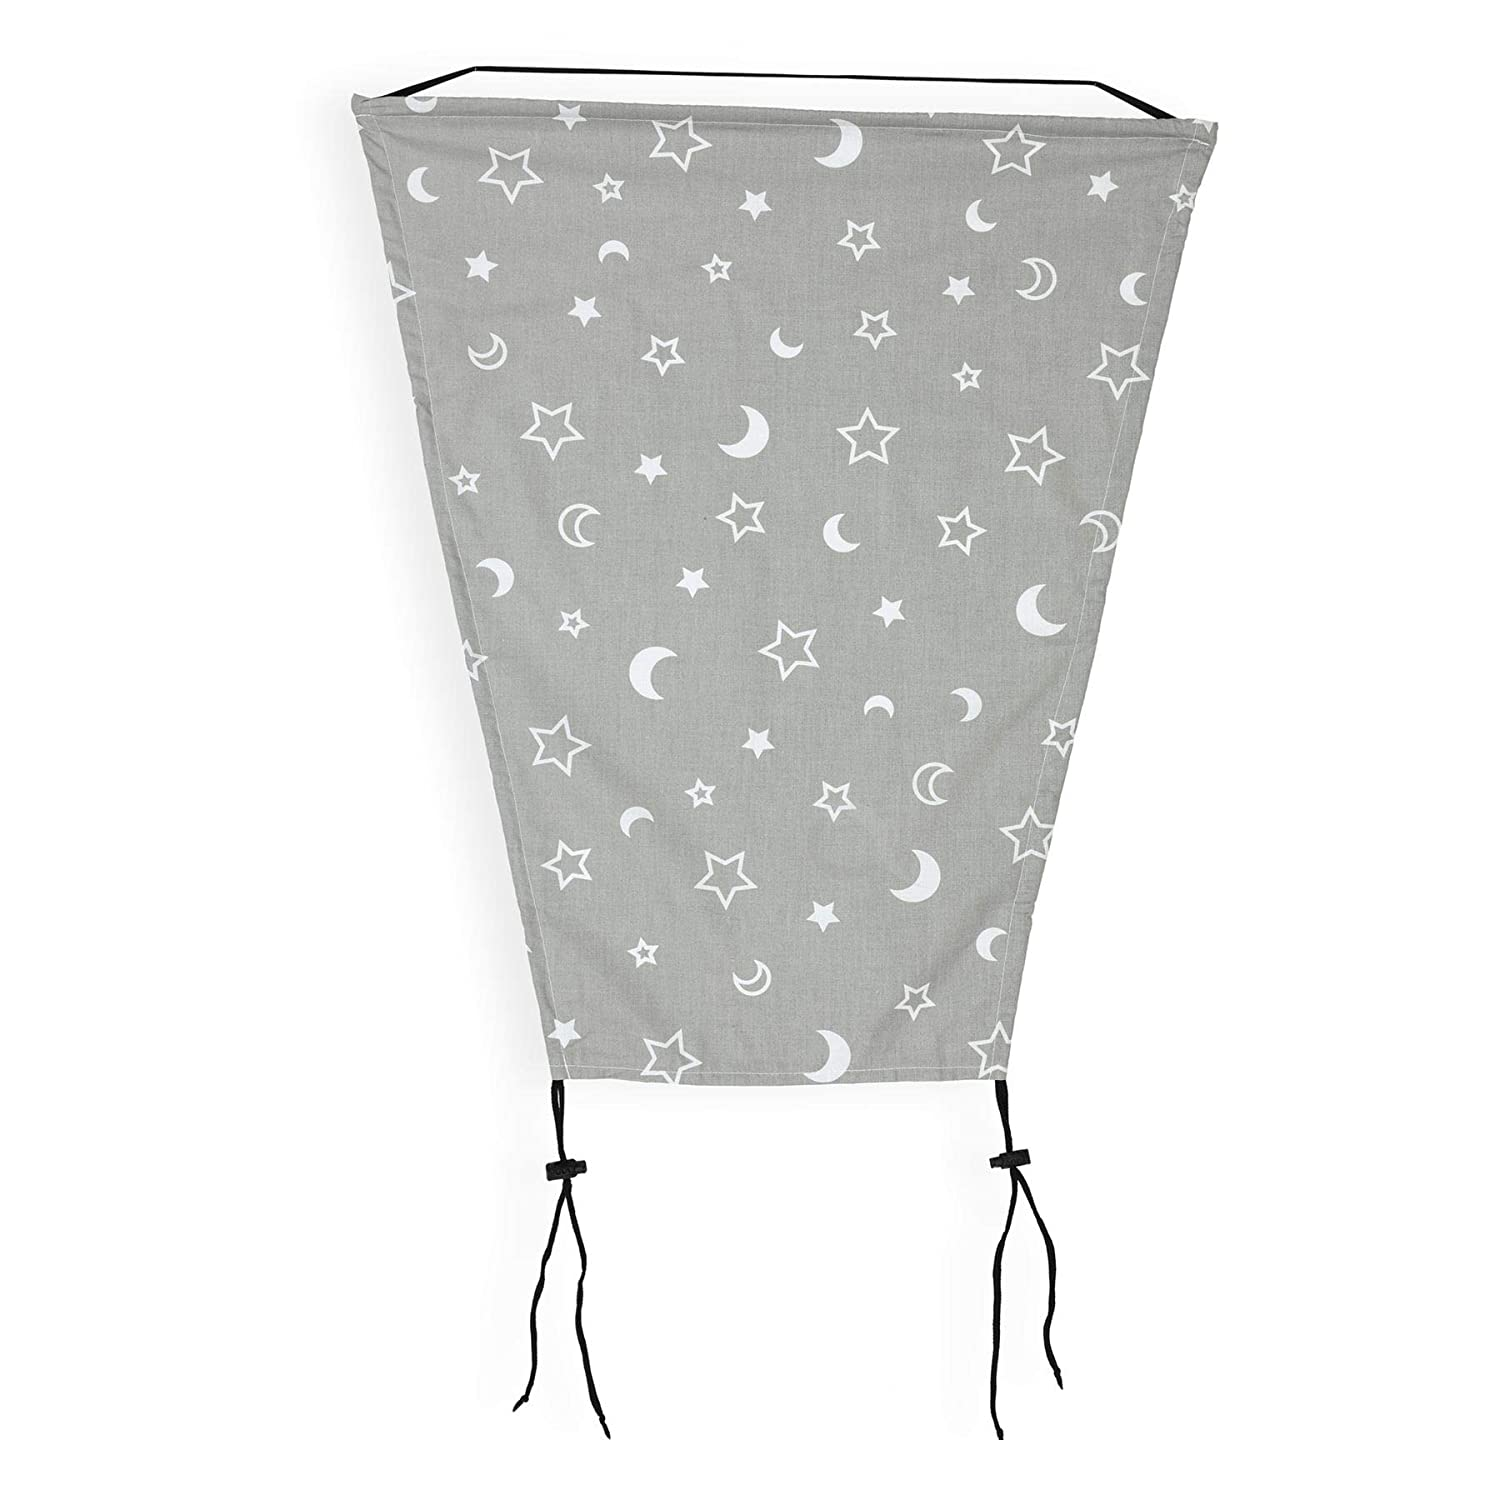 OLOBABY Sun Shade with UV Protection Universal Baby Sun Sail for Pram Pushchair Moon /& Star Grey Buggy Stroller